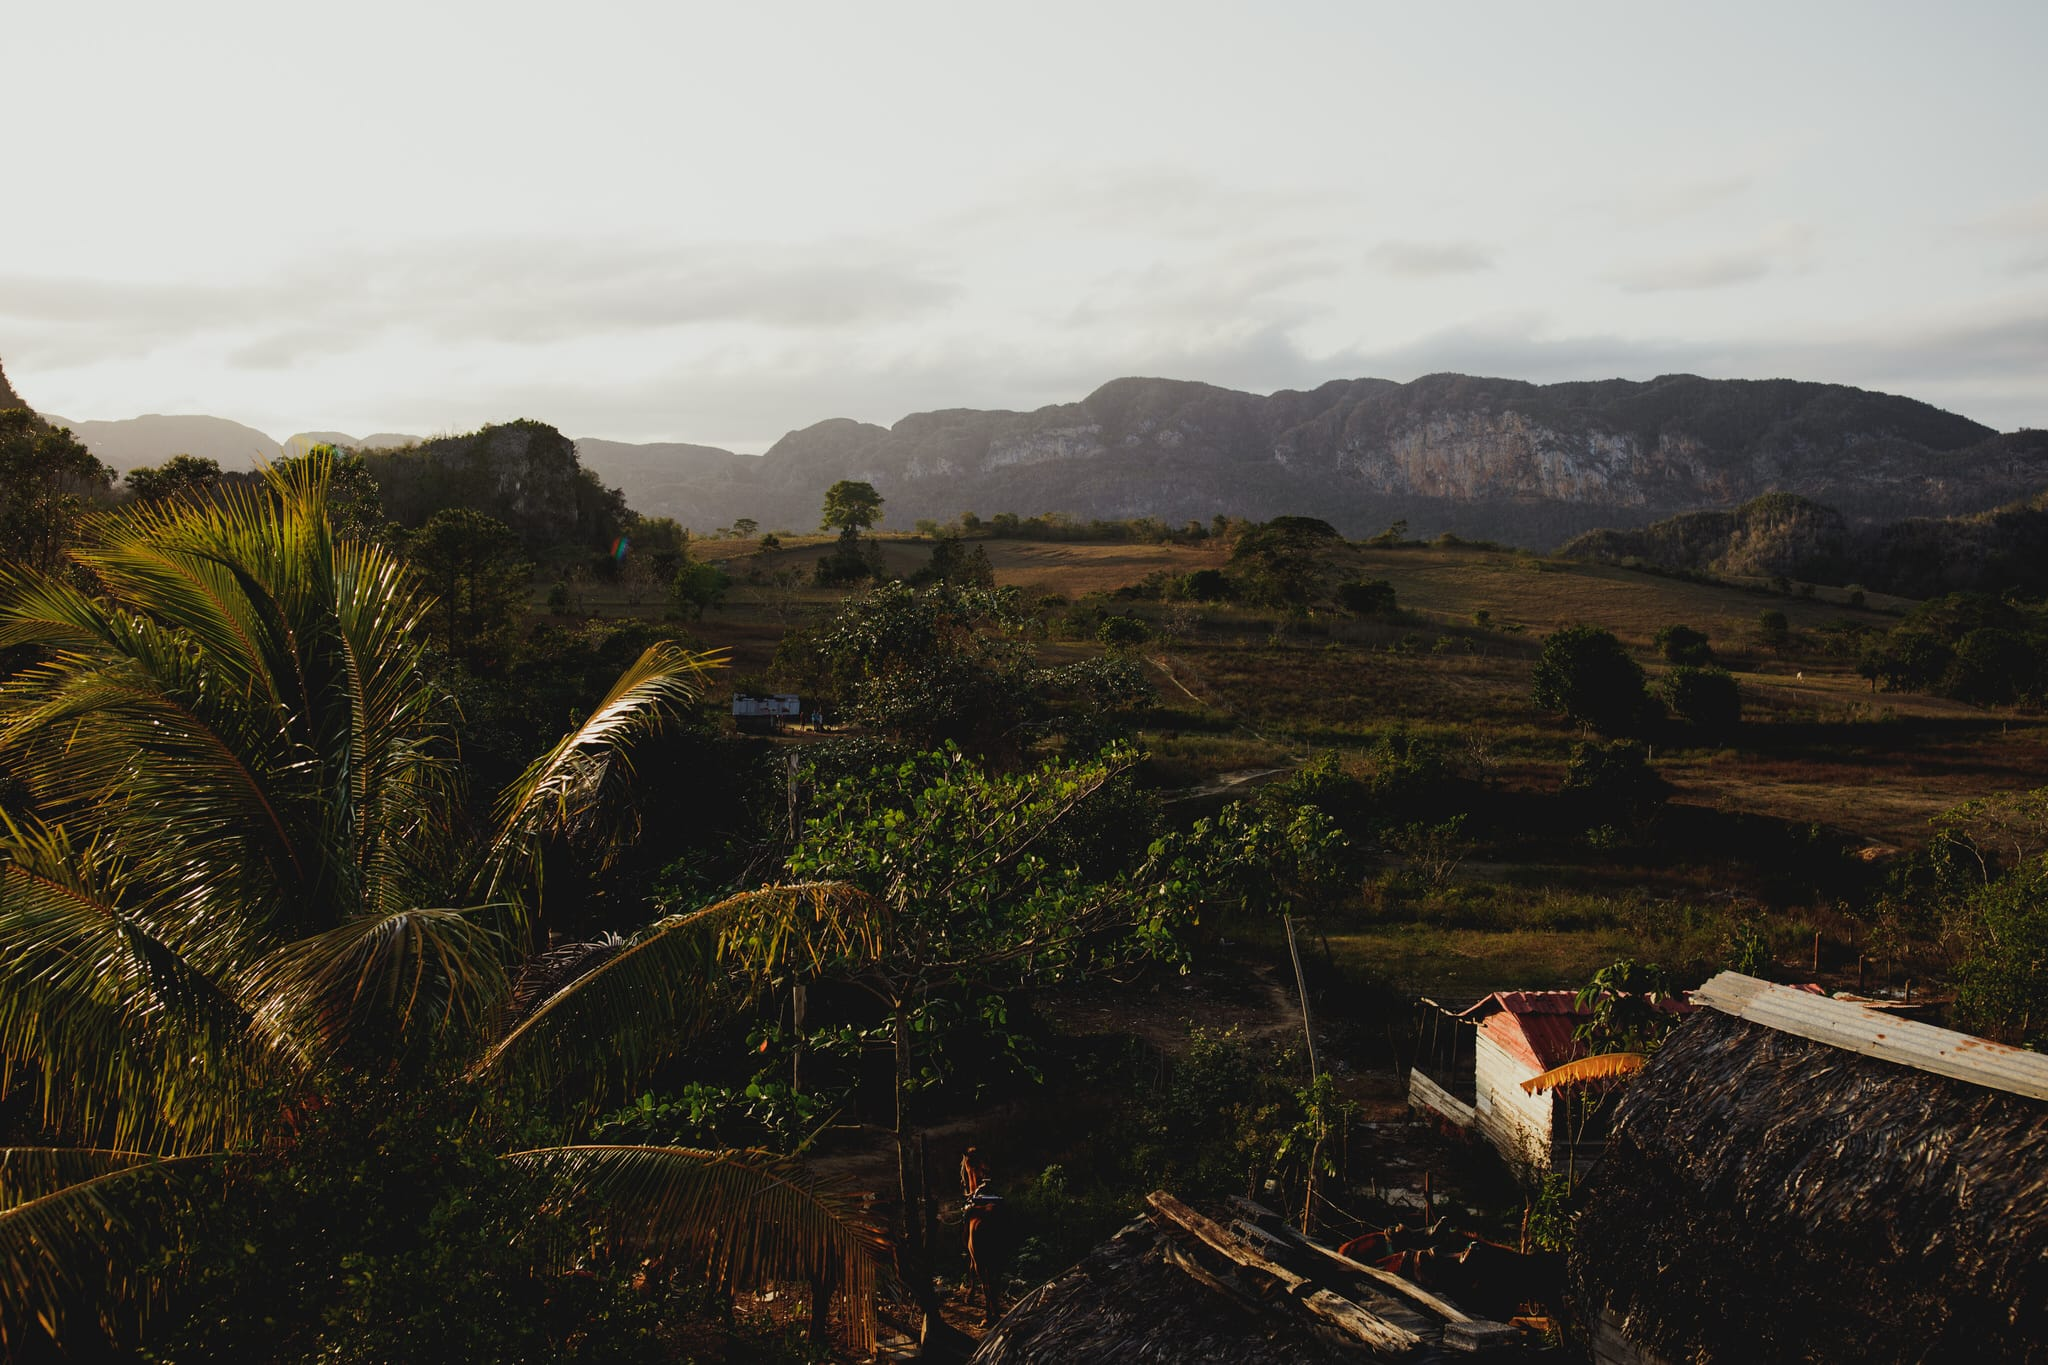 Tobacco farm at sunset in Vinales, Cuba. Wedding and travel photographer Brent Calis.